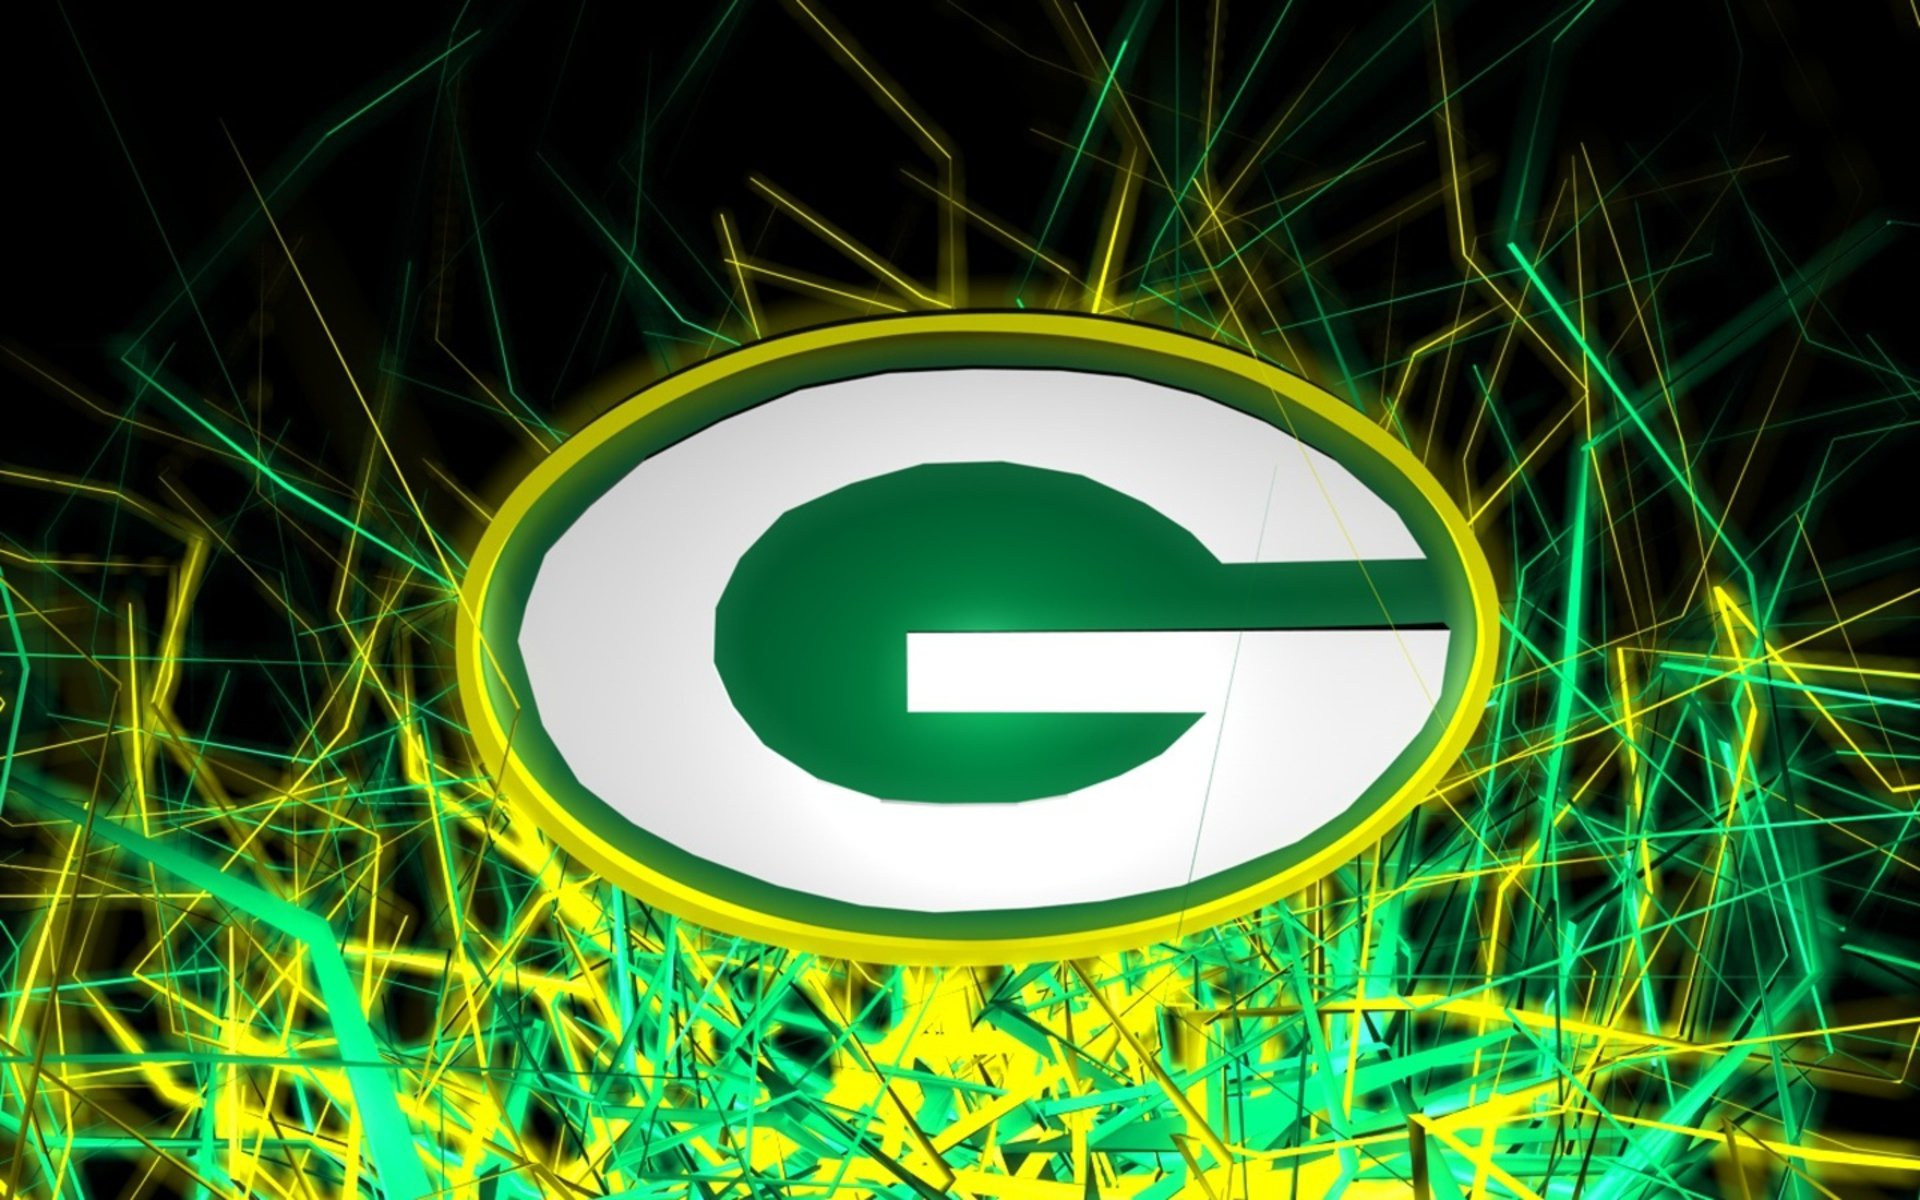 Green Bay Packers Cell Phone Wallpaper 1920x1200